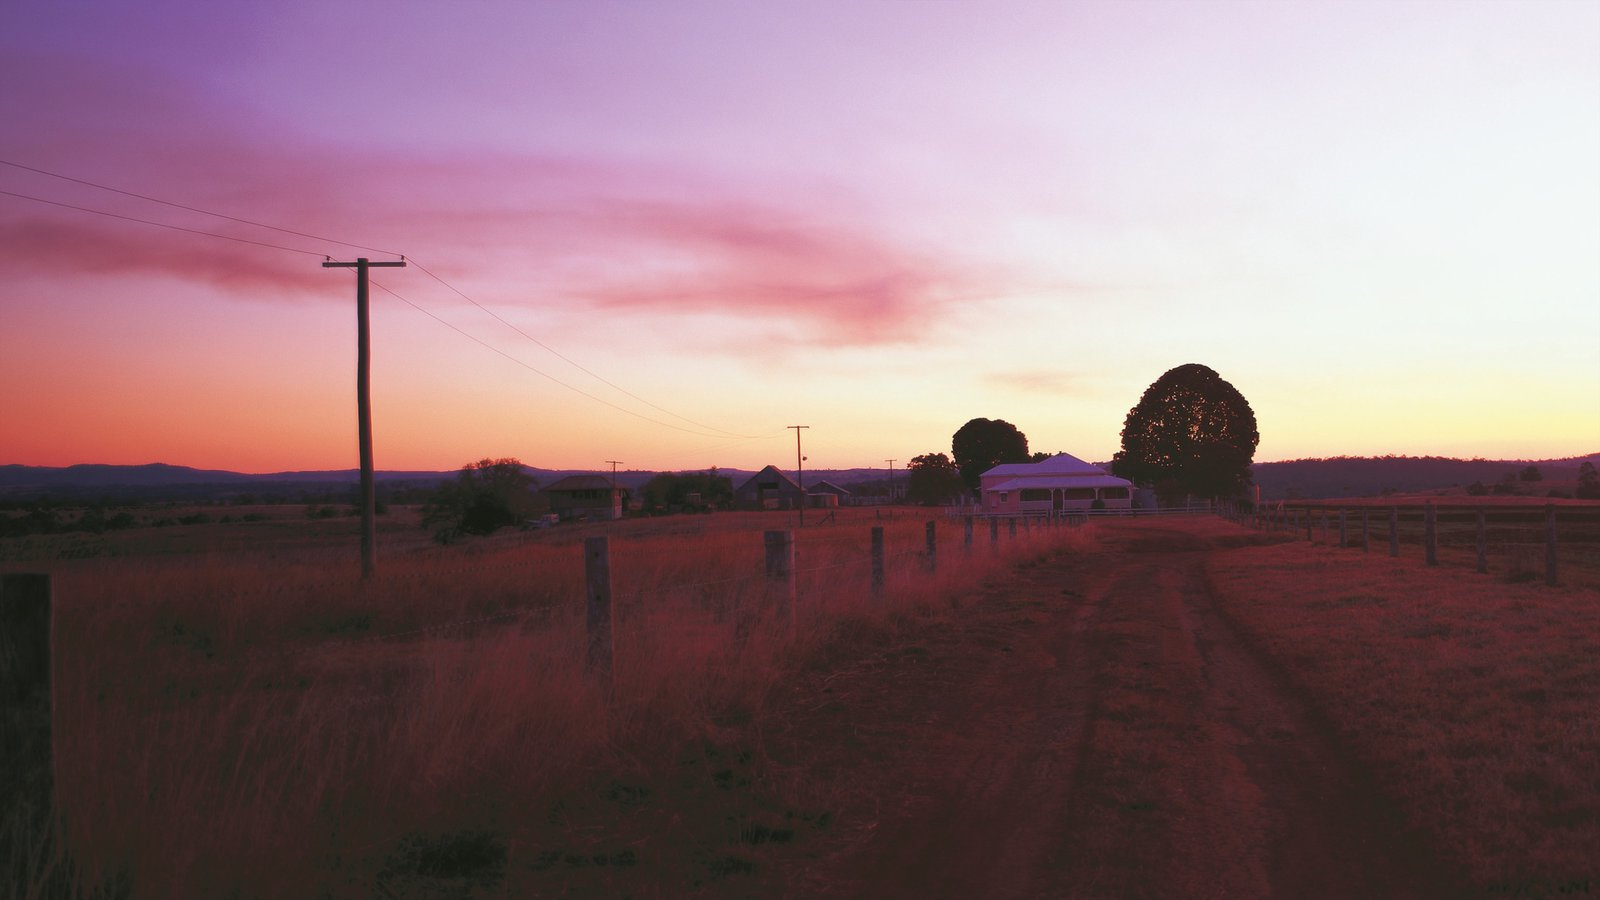 Darling Downs showing farmland and a sunset